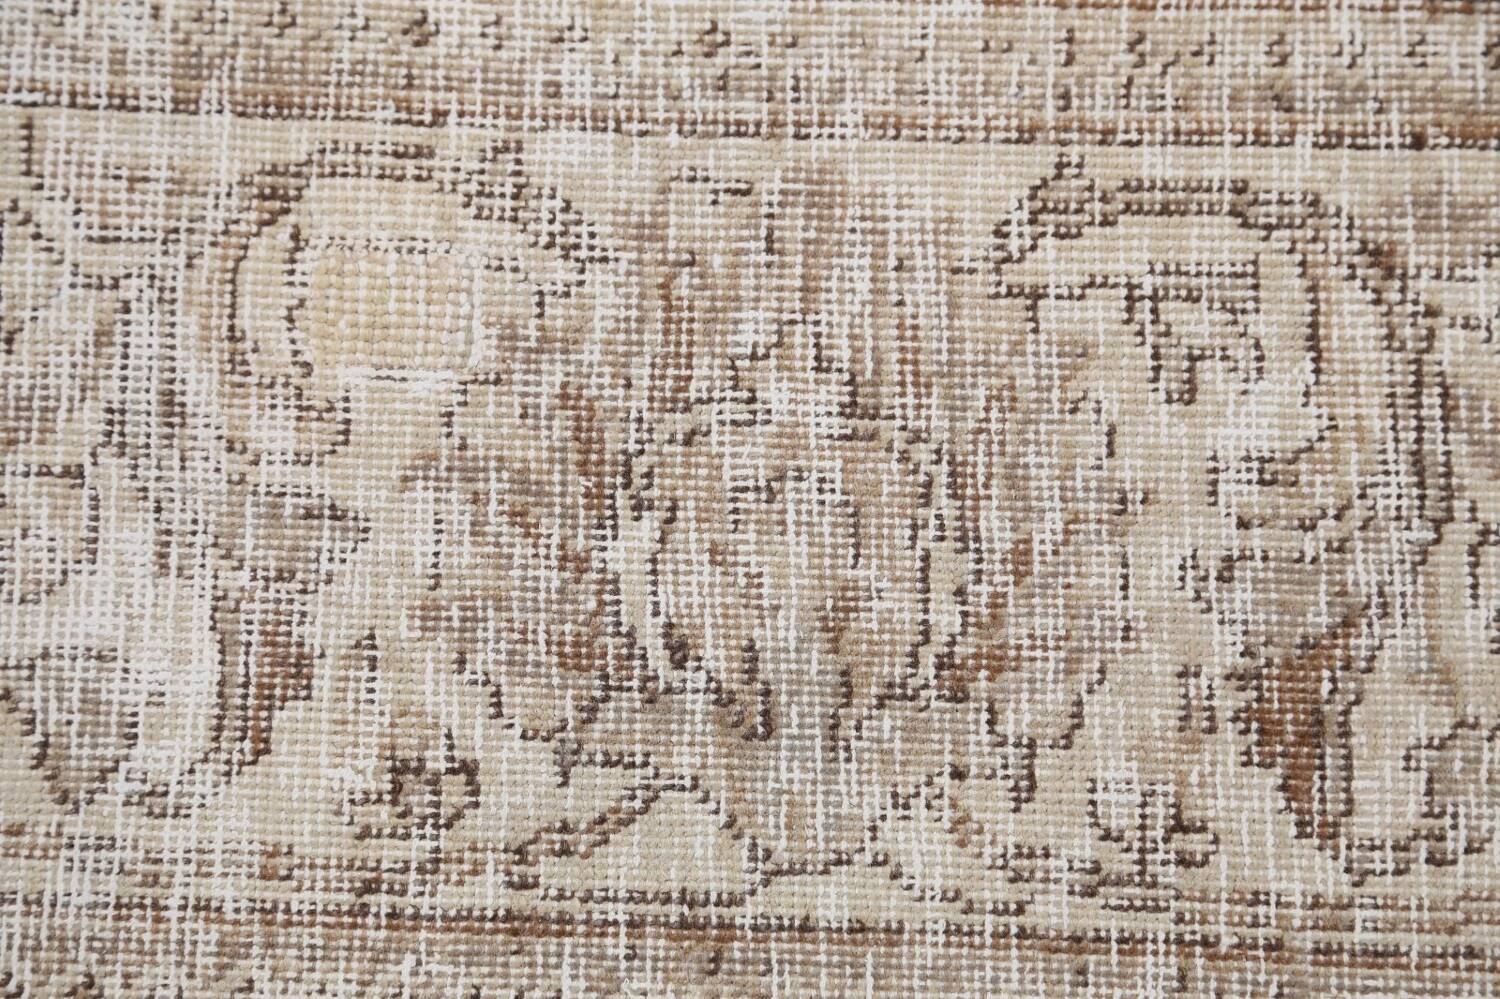 Antique Muted Floral Tabriz Persian Area Rug 9x12 image 9